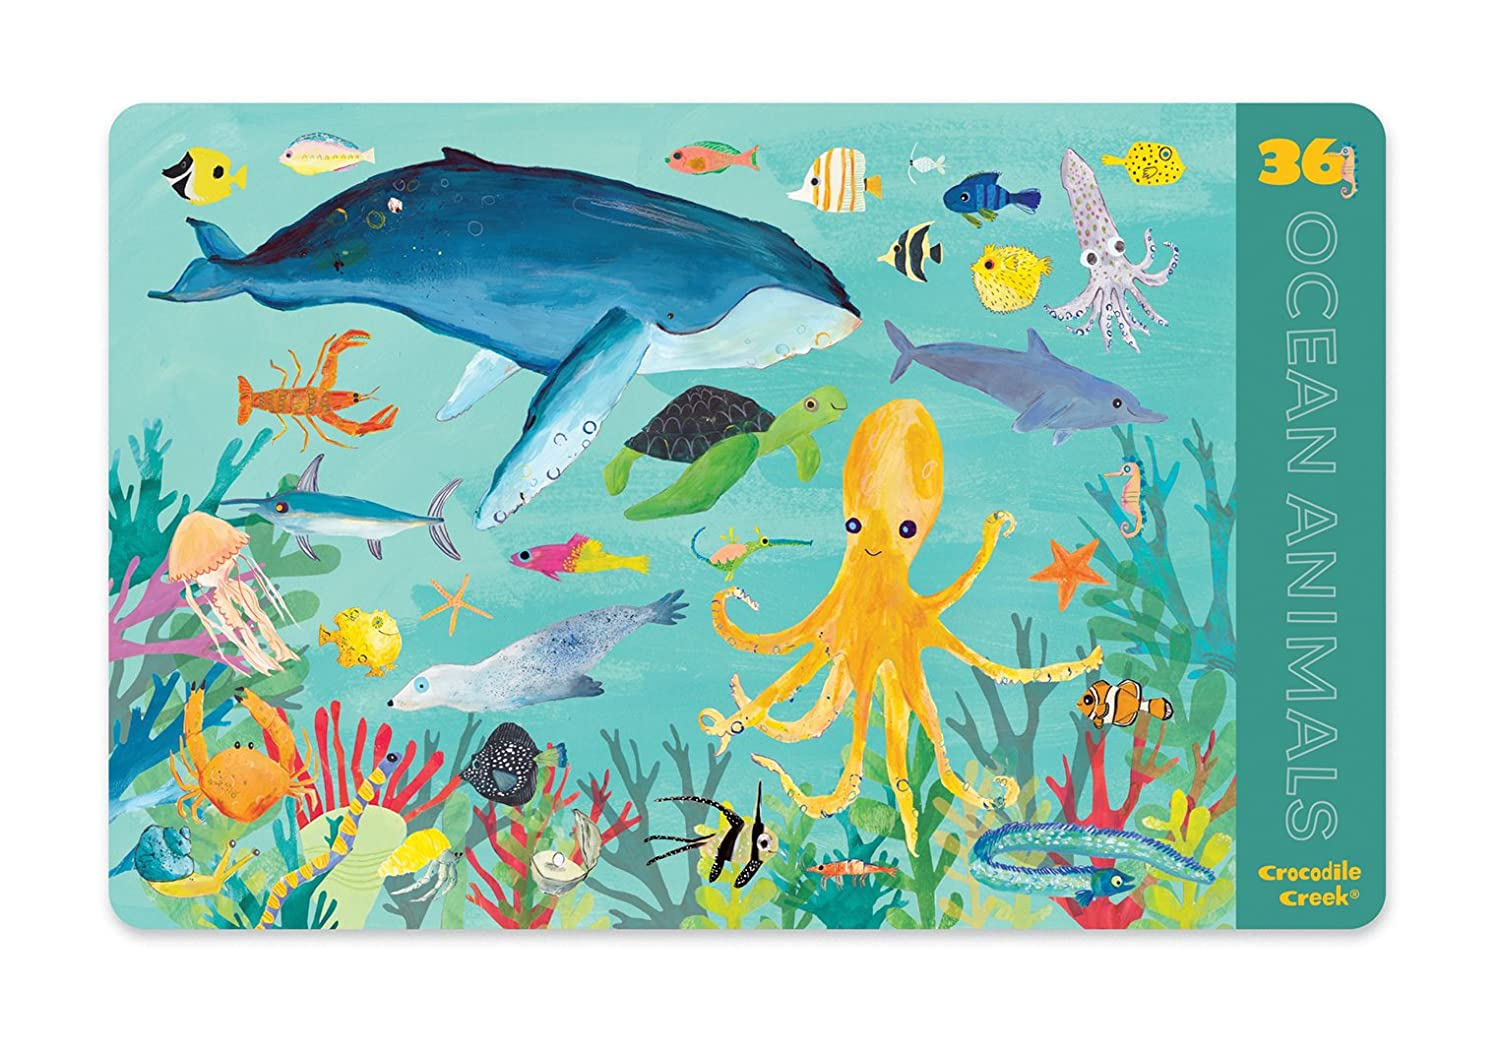 Teal Yellow Blue Crocodile Creek 36 Ocean Animals 2-Sided Placemat Childrens Green